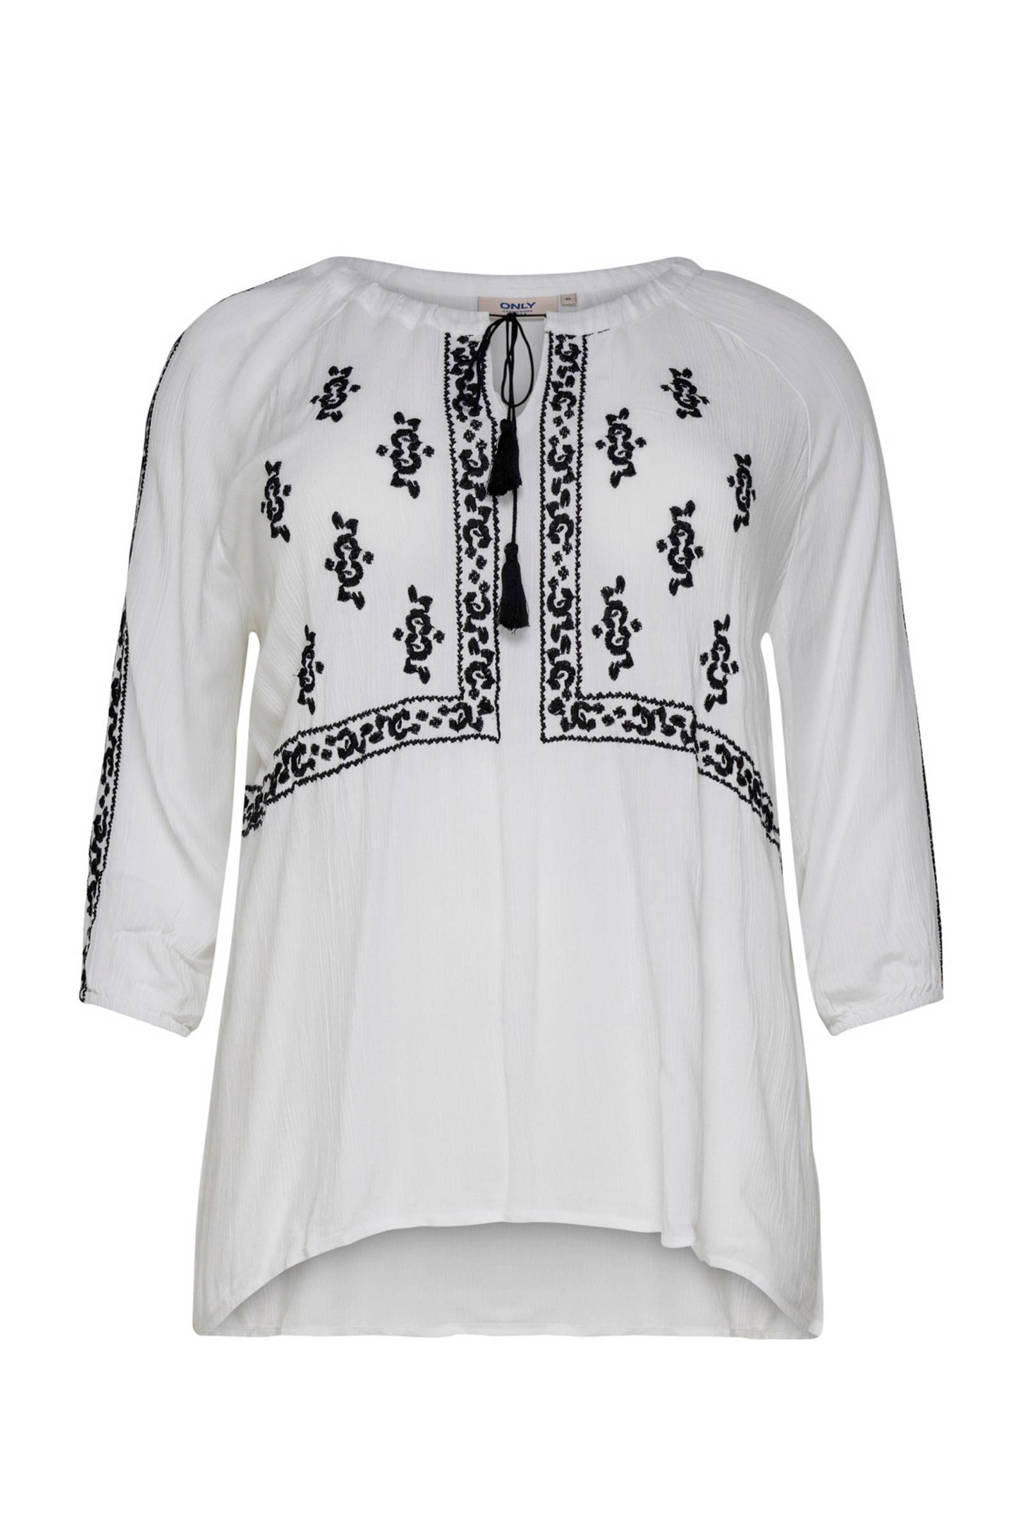 ONLY carmakoma top met borduursels wit, Wit/zwart